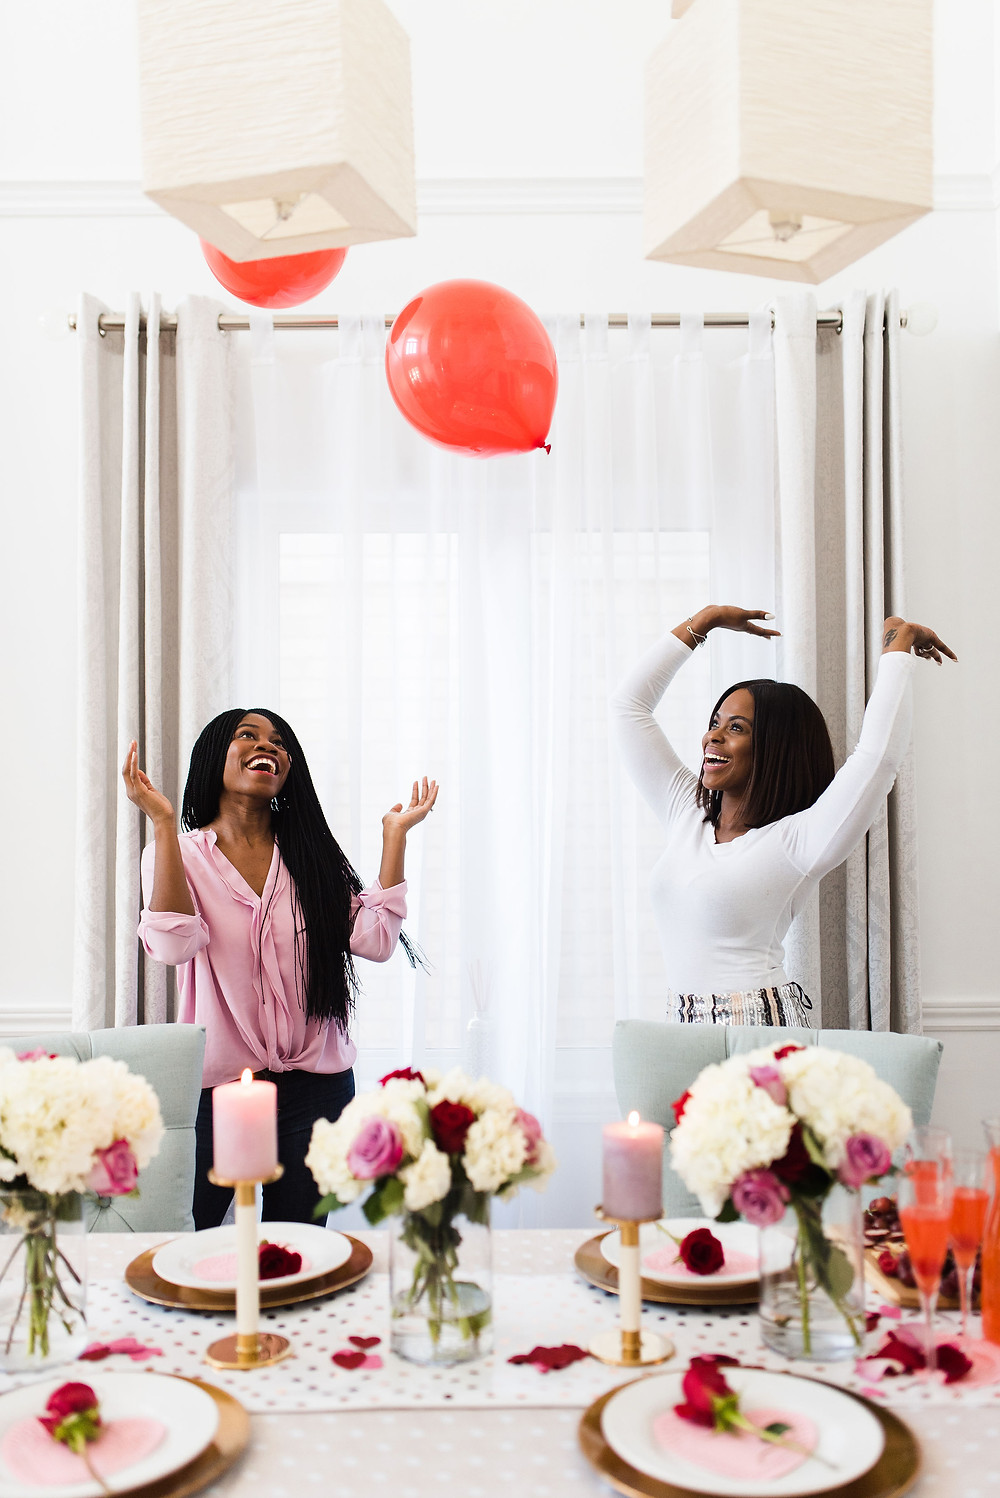 Visit her blog for details on How to Throw a Galentine's Day Party